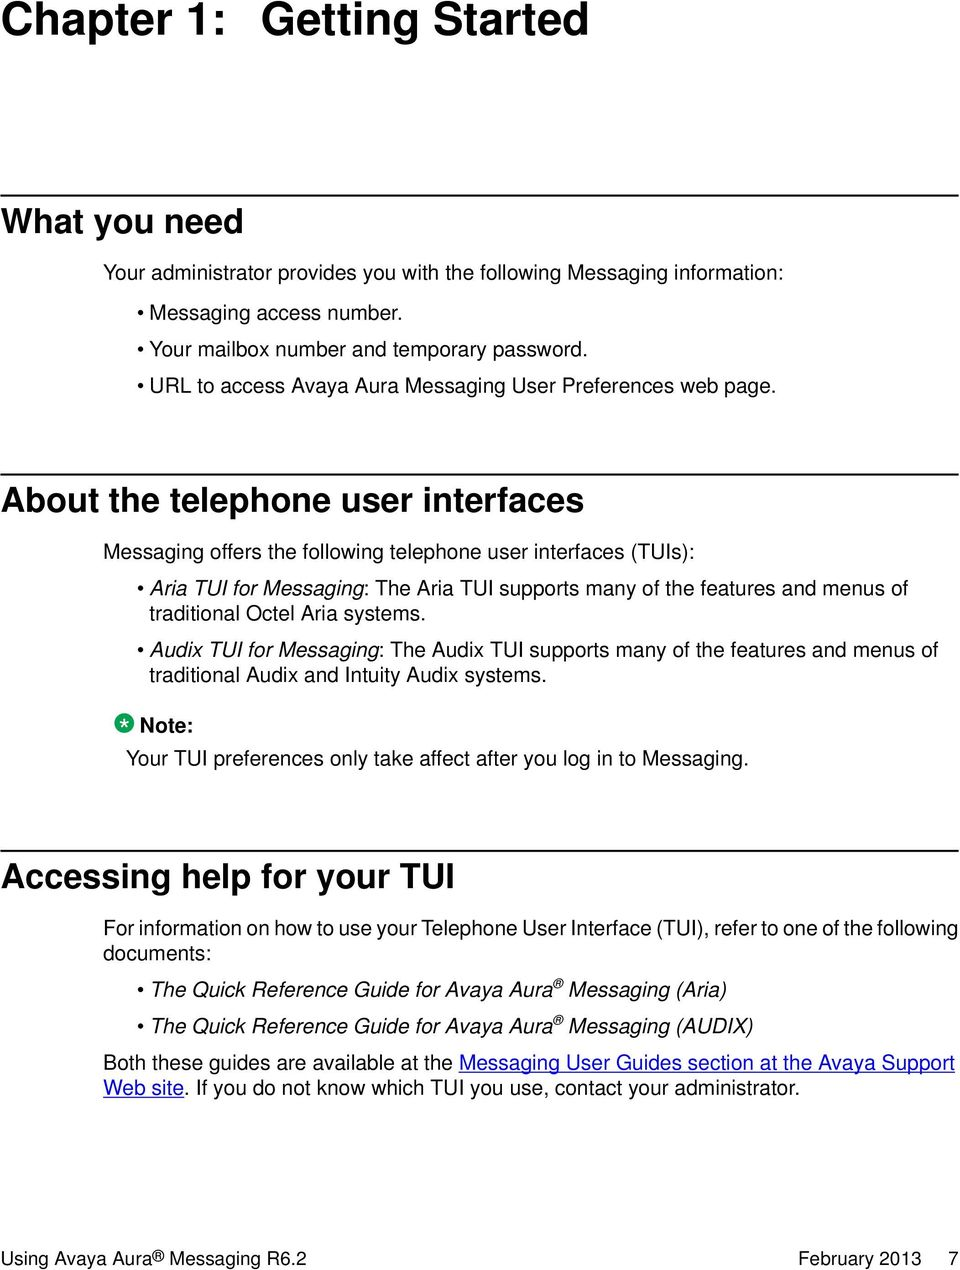 About the telephone user interfaces Messaging offers the following telephone user interfaces (TUIs): Aria TUI for Messaging: The Aria TUI supports many of the features and menus of traditional Octel